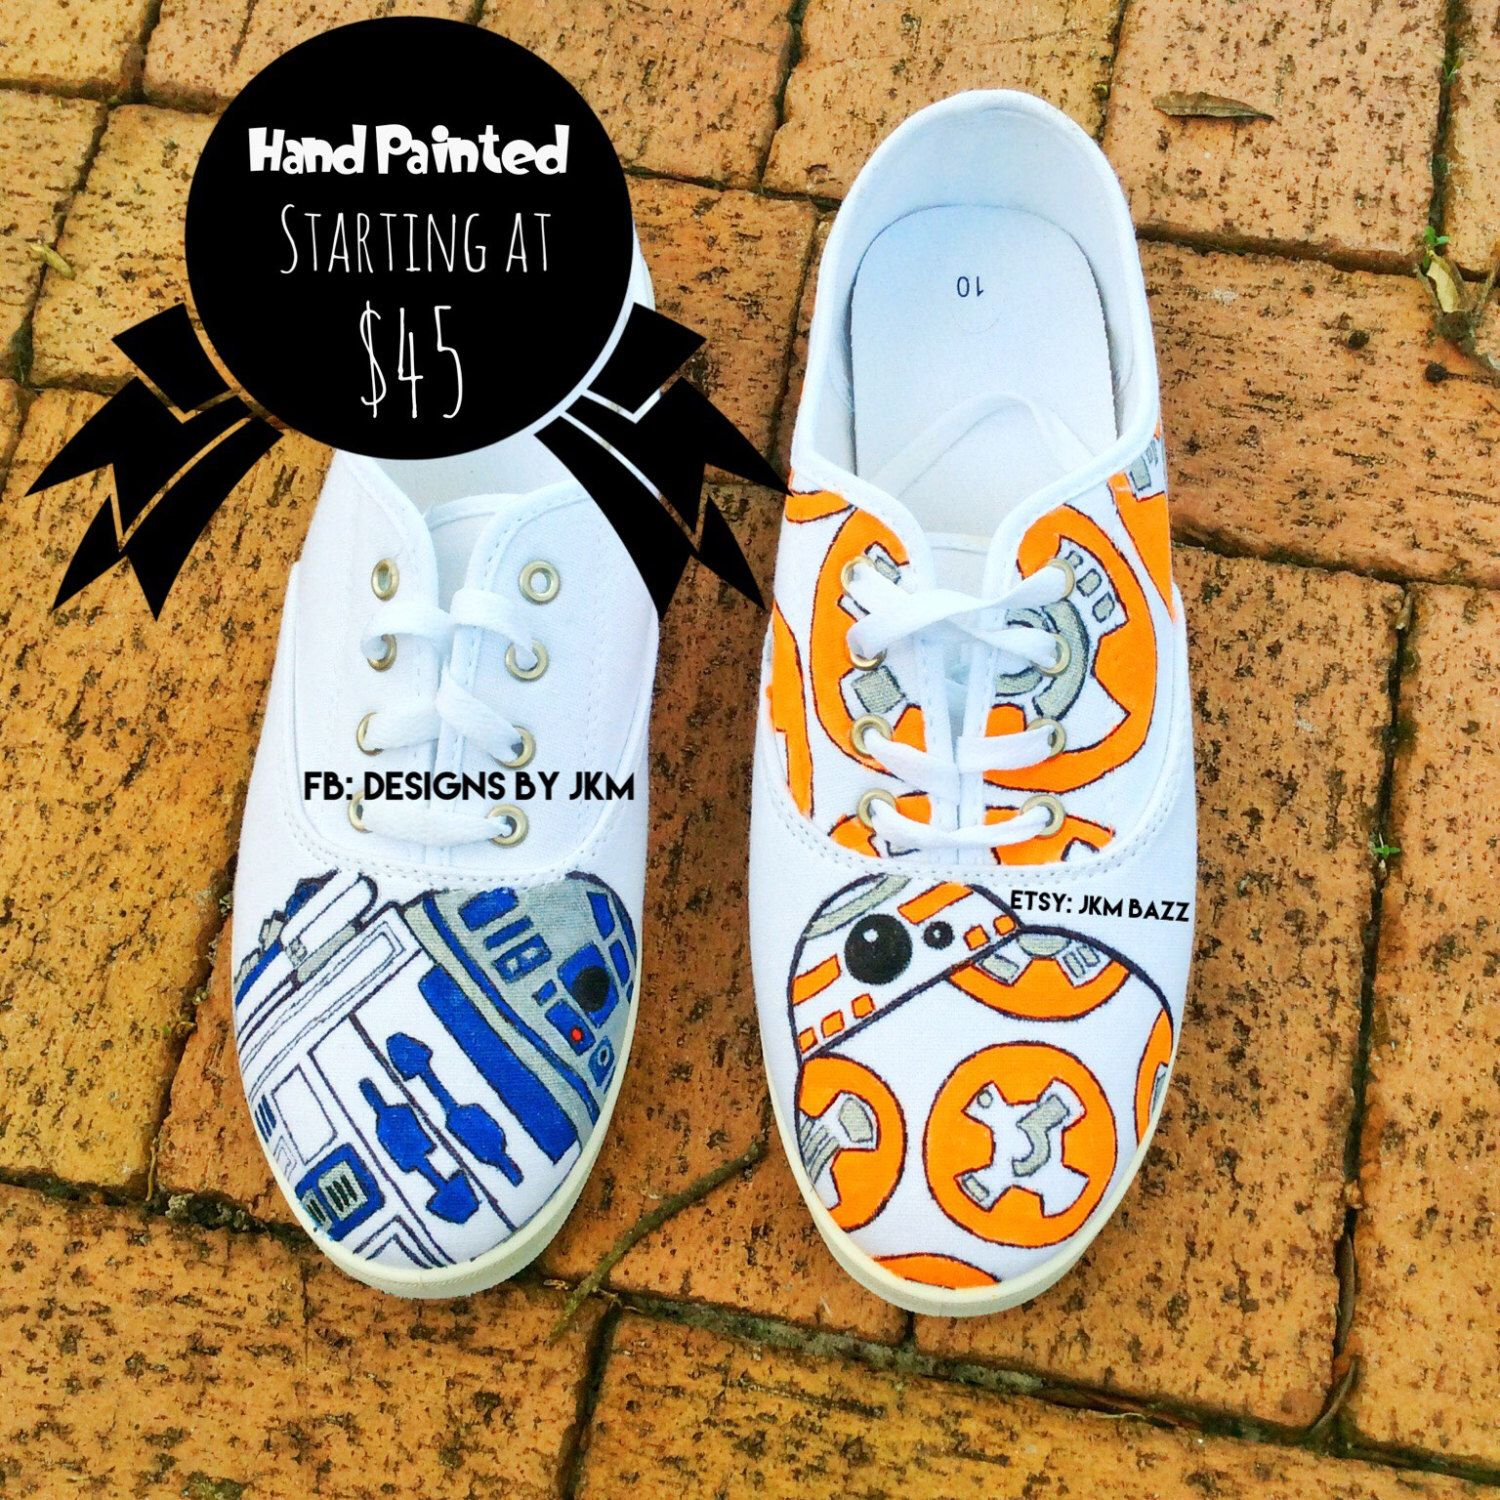 c95cd38f1f54d Hand painted canvas shoes, Star wars inspired:R2-D2 and BB-8 (adult ...